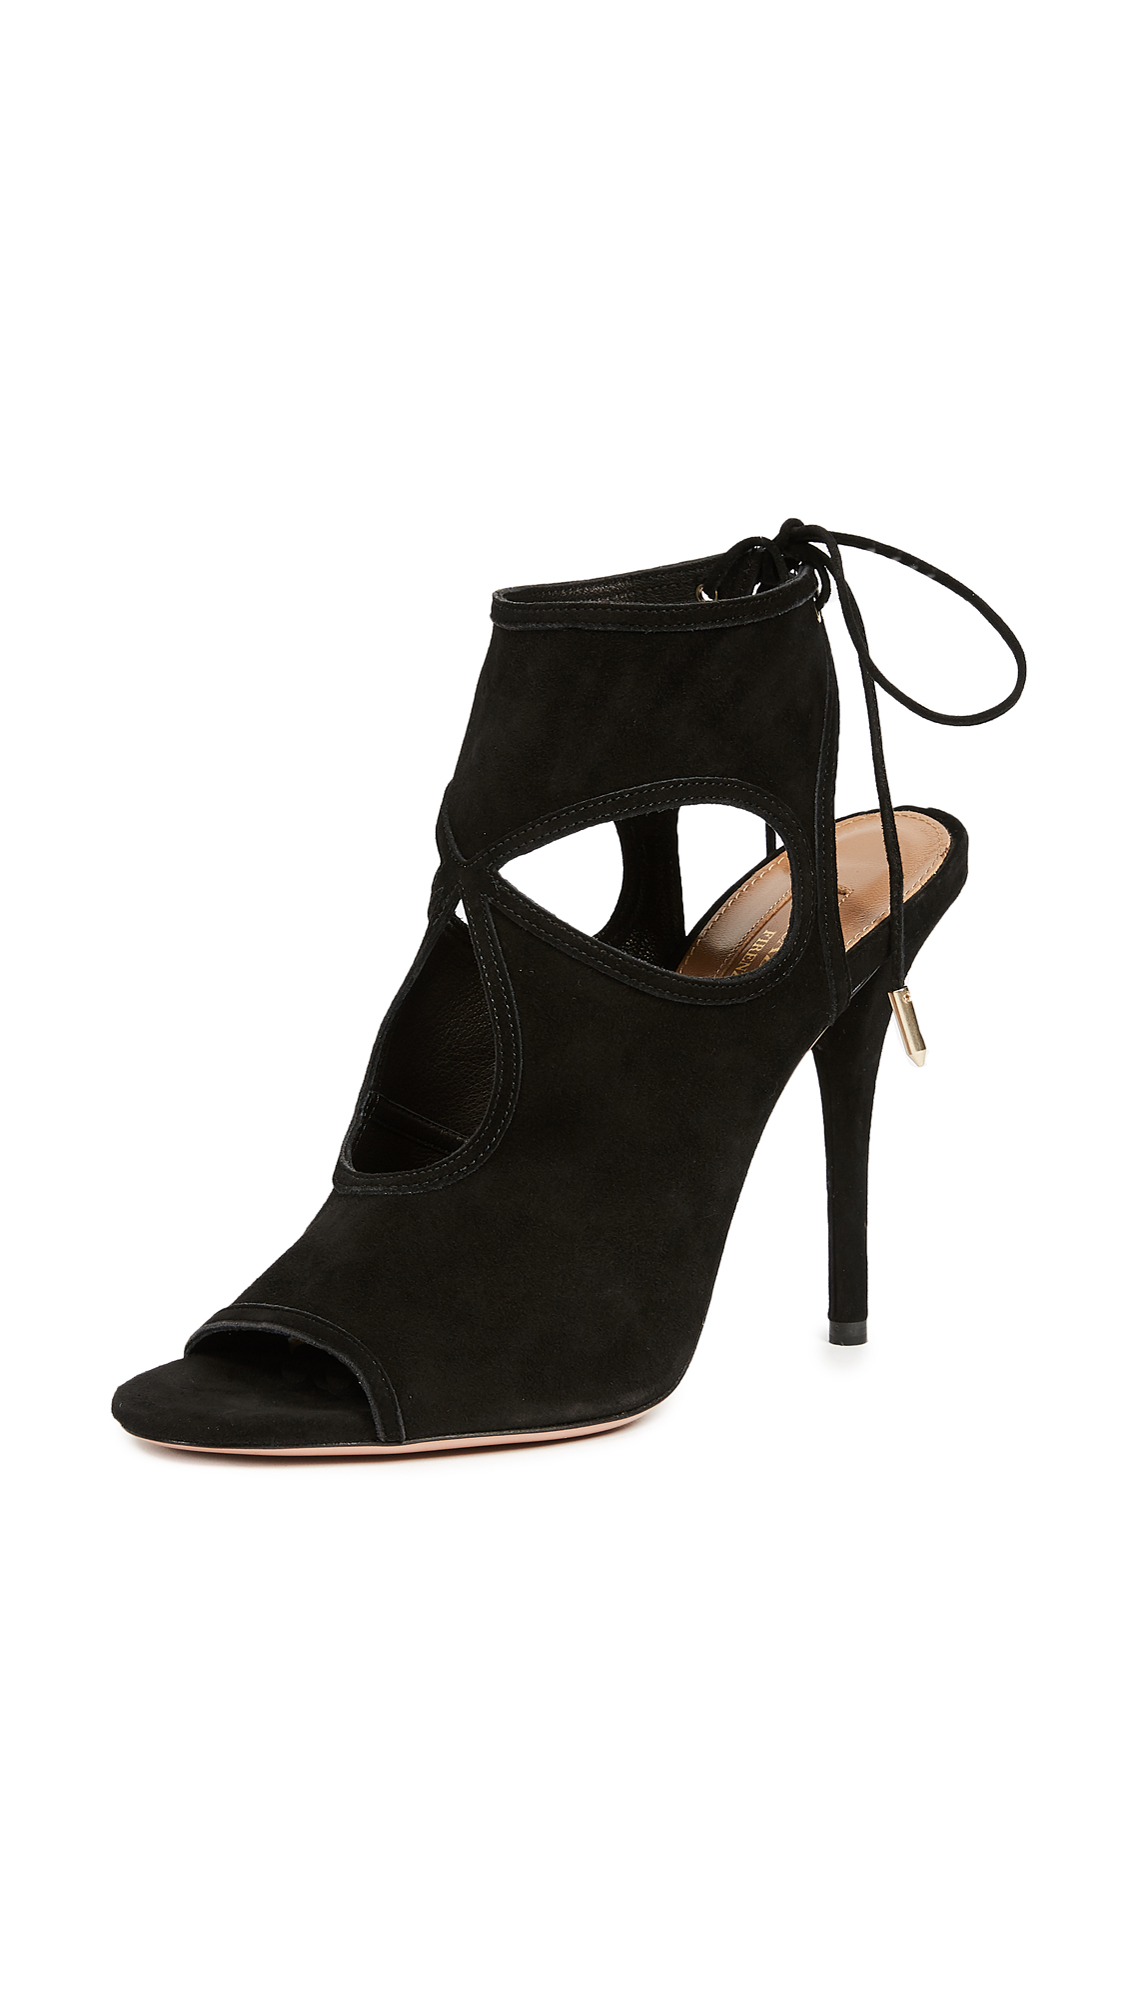 Aquazzura Sexy Thing Cutout Booties - Black